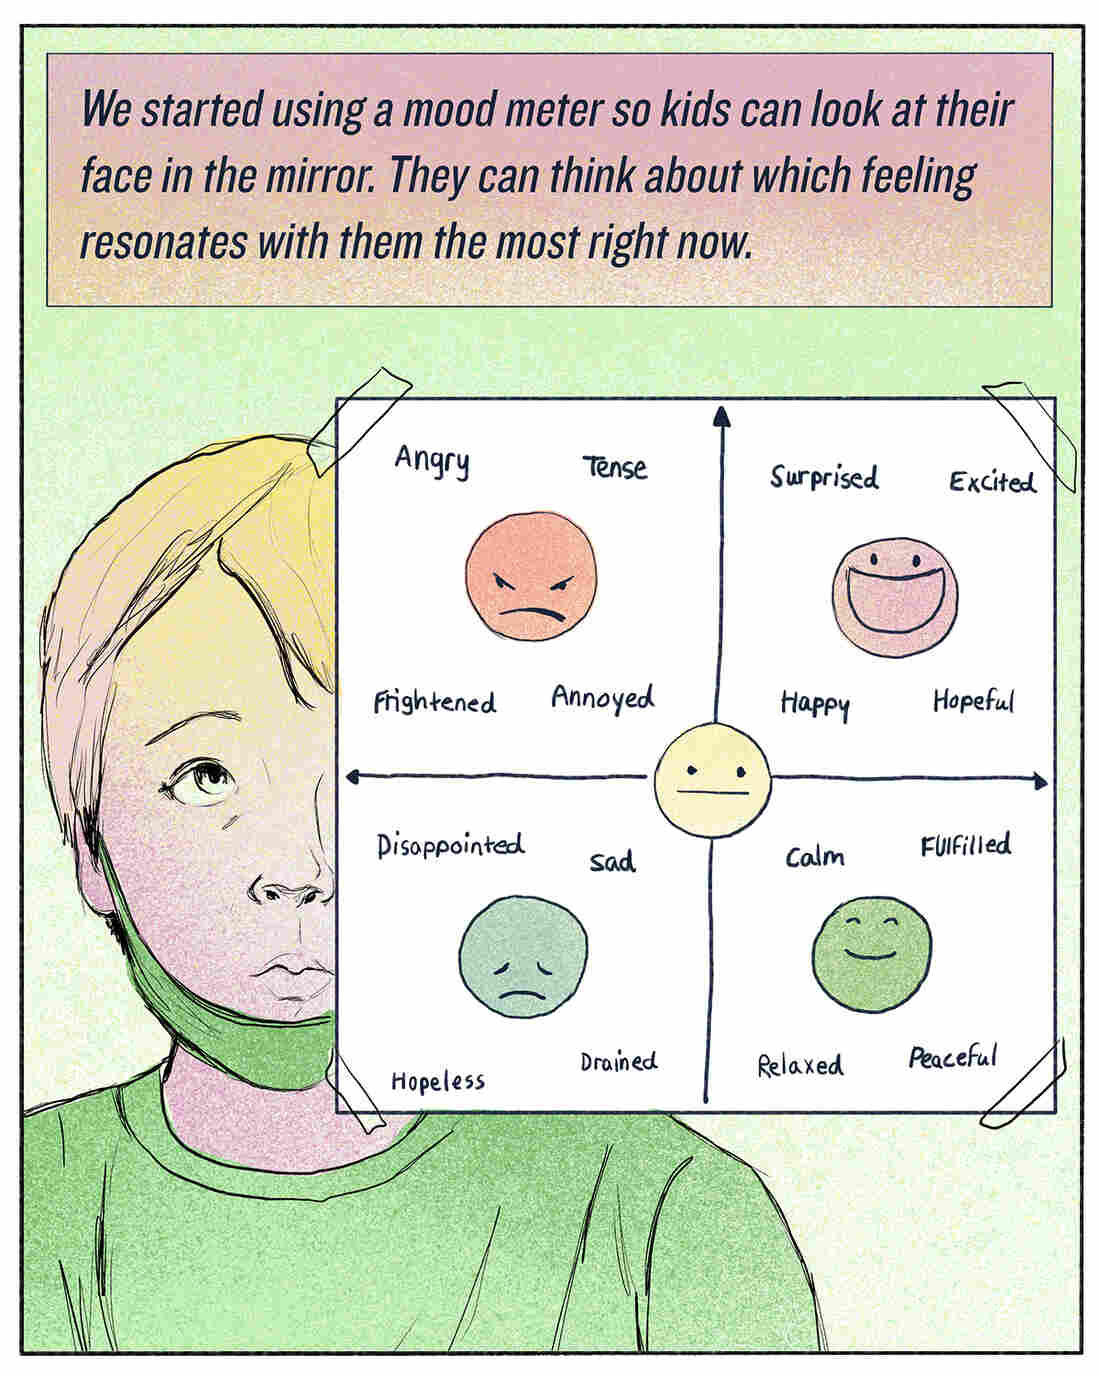 """""""We started using a mood meter so kids can look at their face in the mirror. They can think about which feeling resonates with them the most right now."""""""